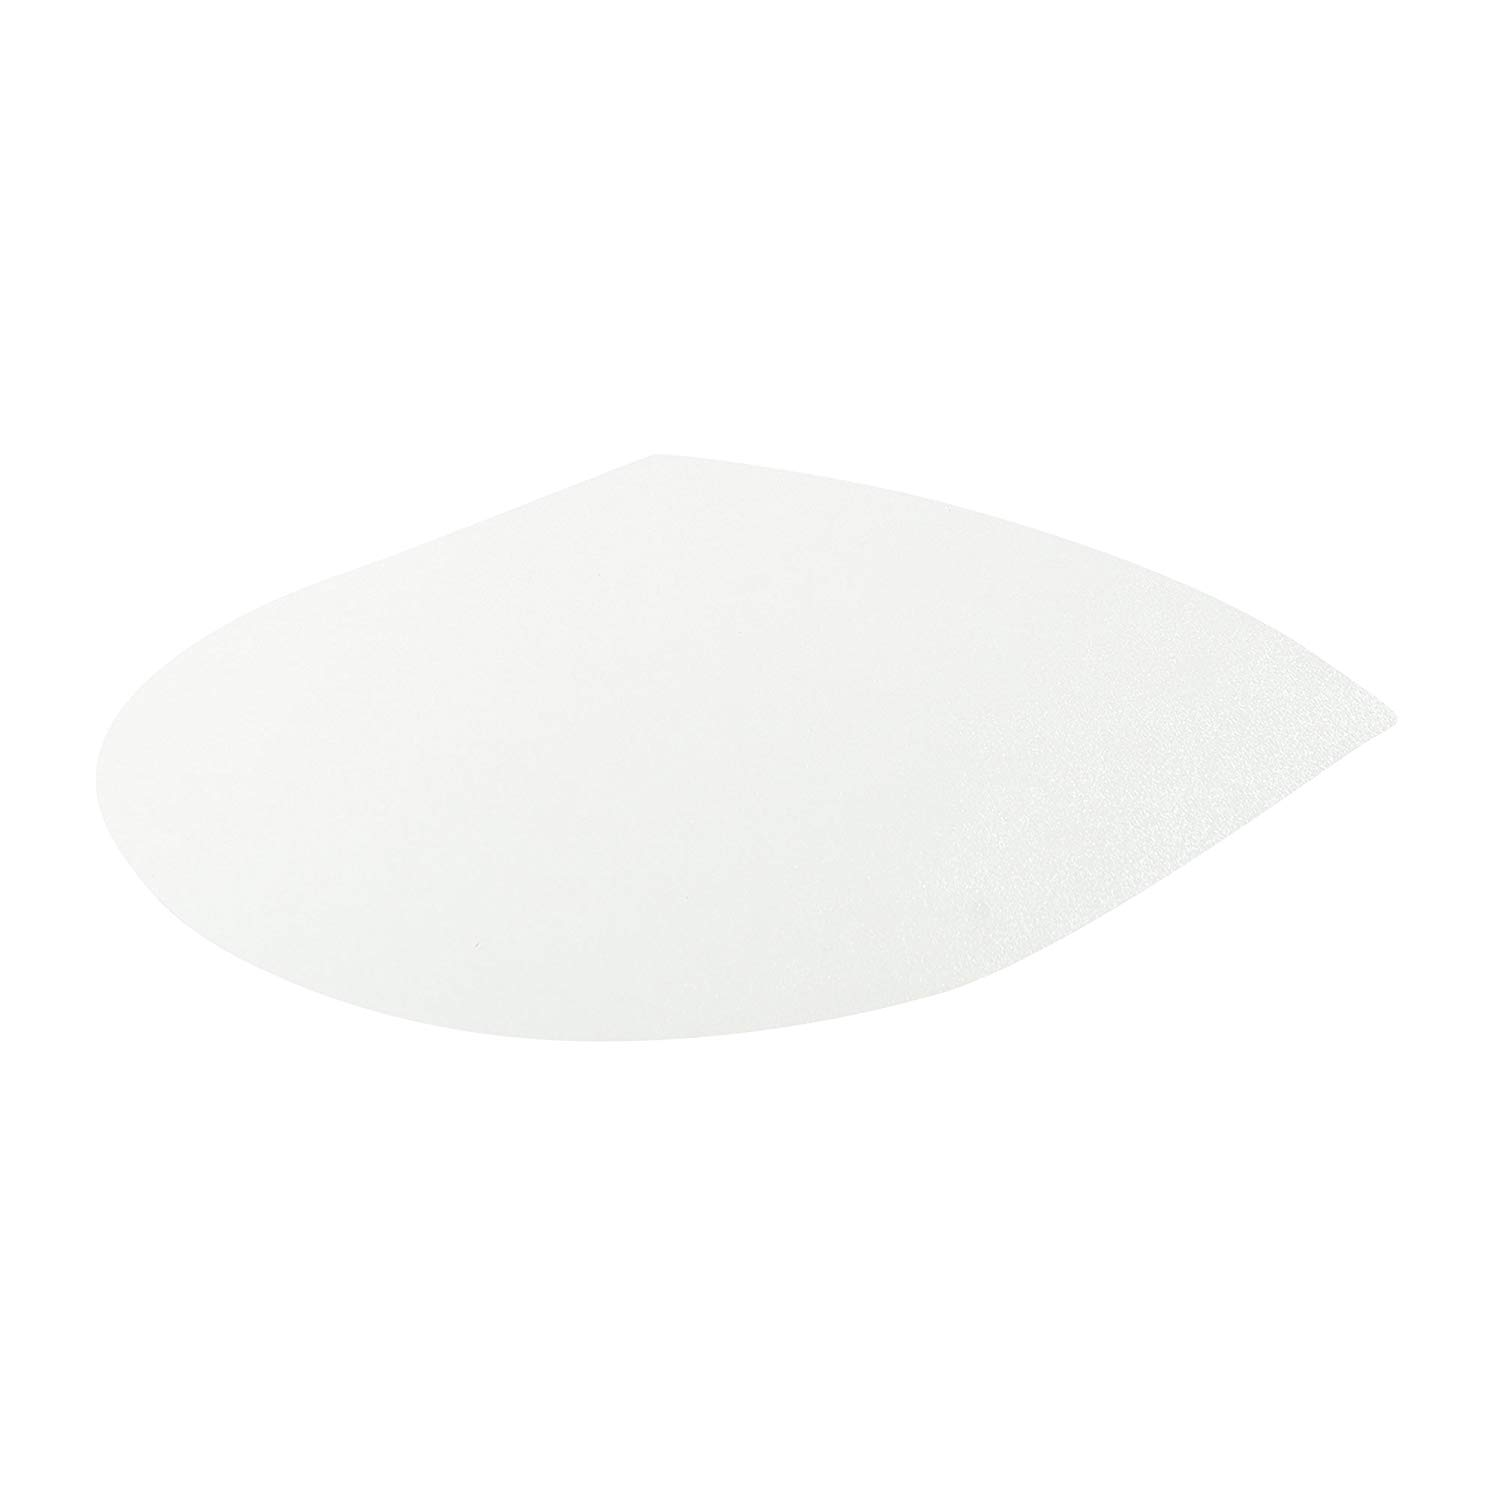 Deflecto Polycarbonate Clear Chair Mat, Hard Floor Use, Contour, 36 x 48 Inches (CM21092HPC)